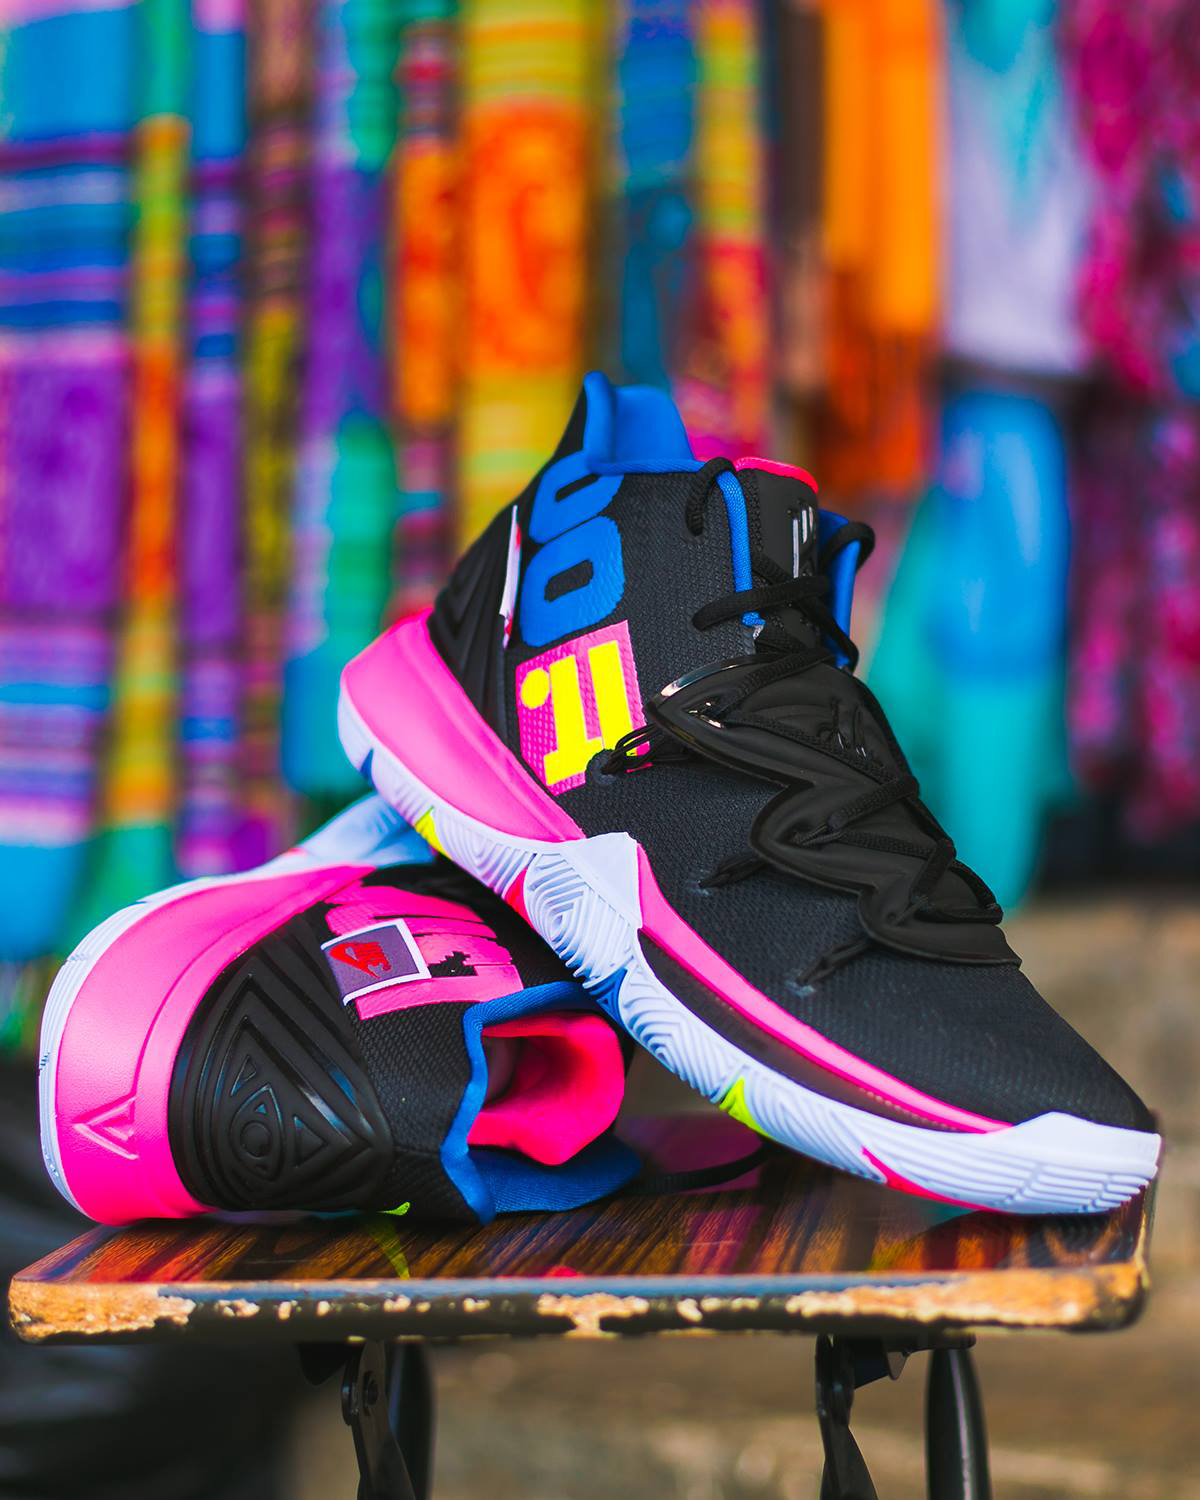 86a46d2027 Nike Kyrie 5 Just Do It Where to Buy